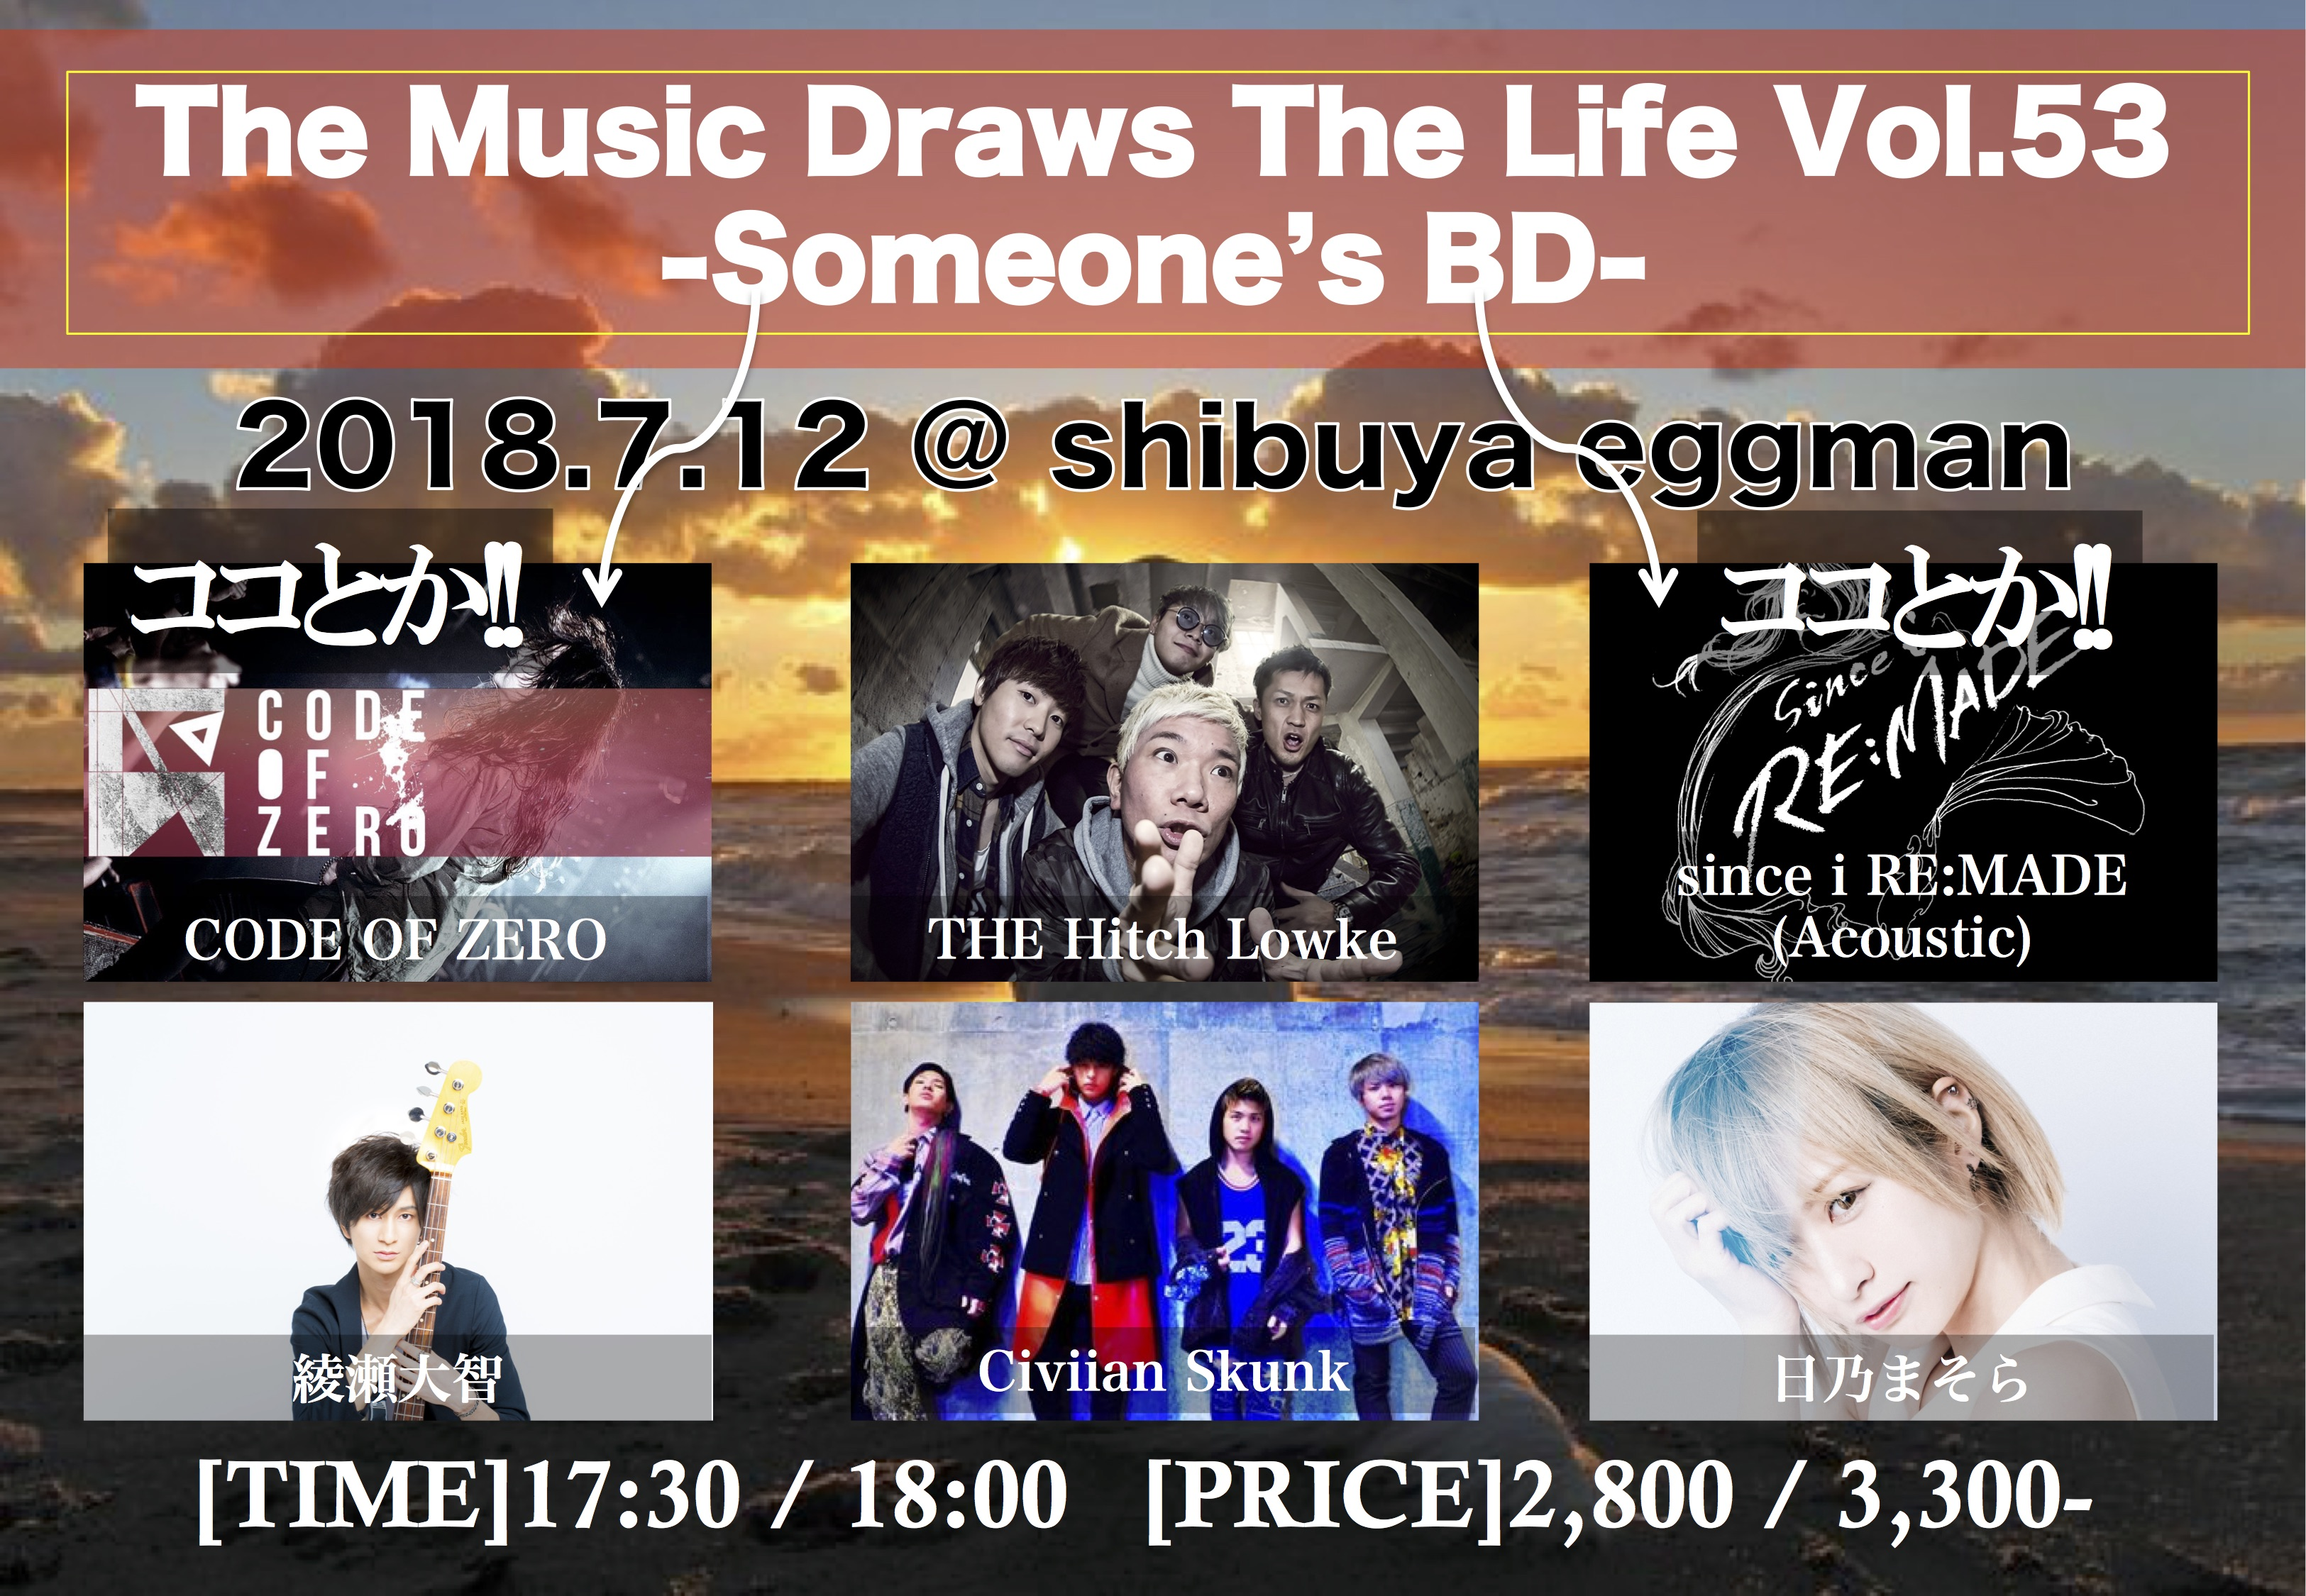 The Music Draws The Life Vol.53 -Someone's BD